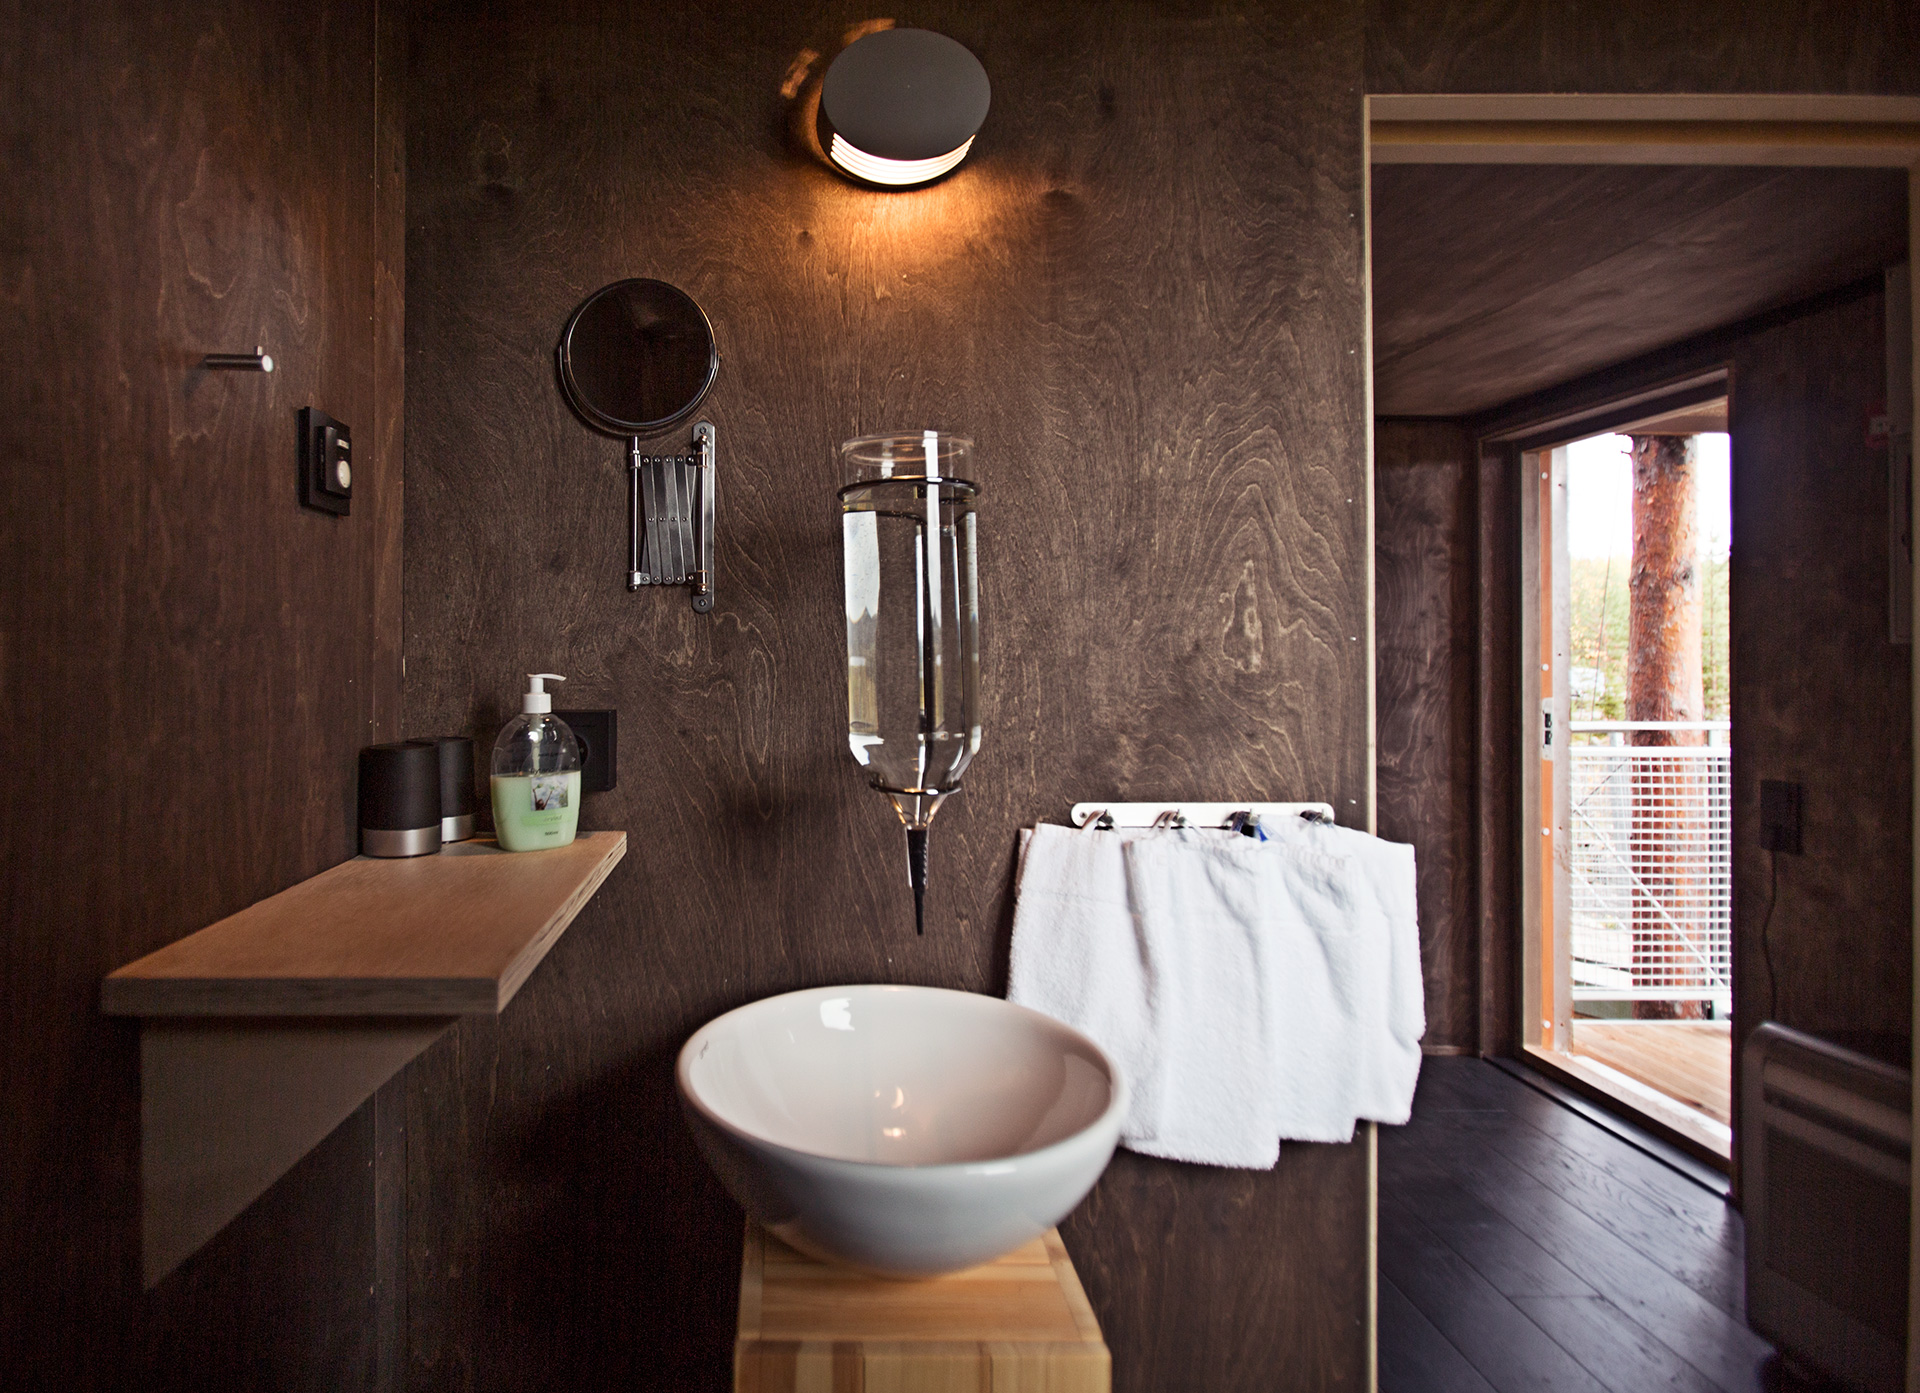 Bathrooms have water-efficient sinks with running water | Treehotel | Kent, Britta Lindvall | STIR